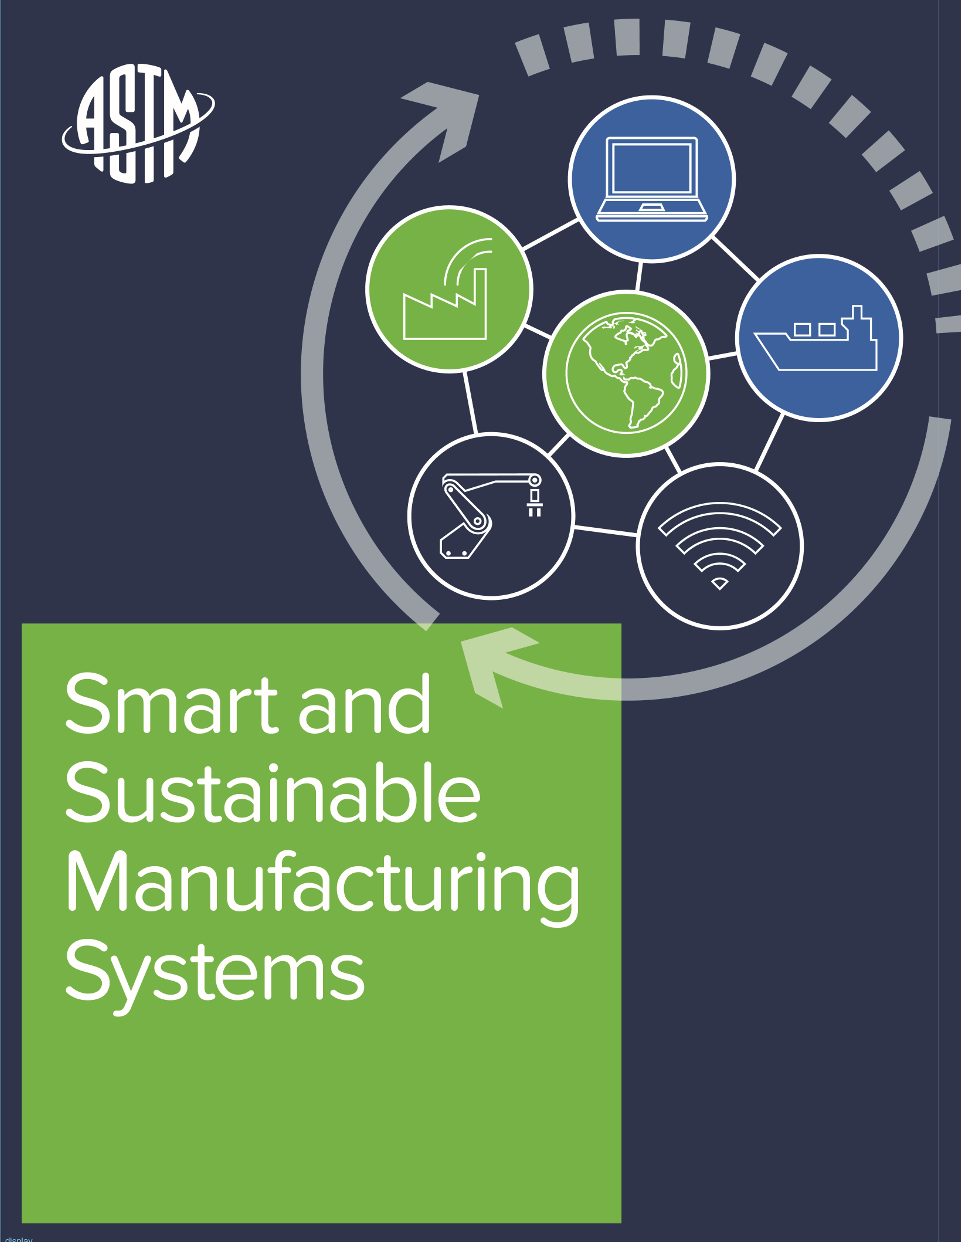 A free new publication from the ASTM on Education and Curriculums for Smart and Sustainable Manufacturing